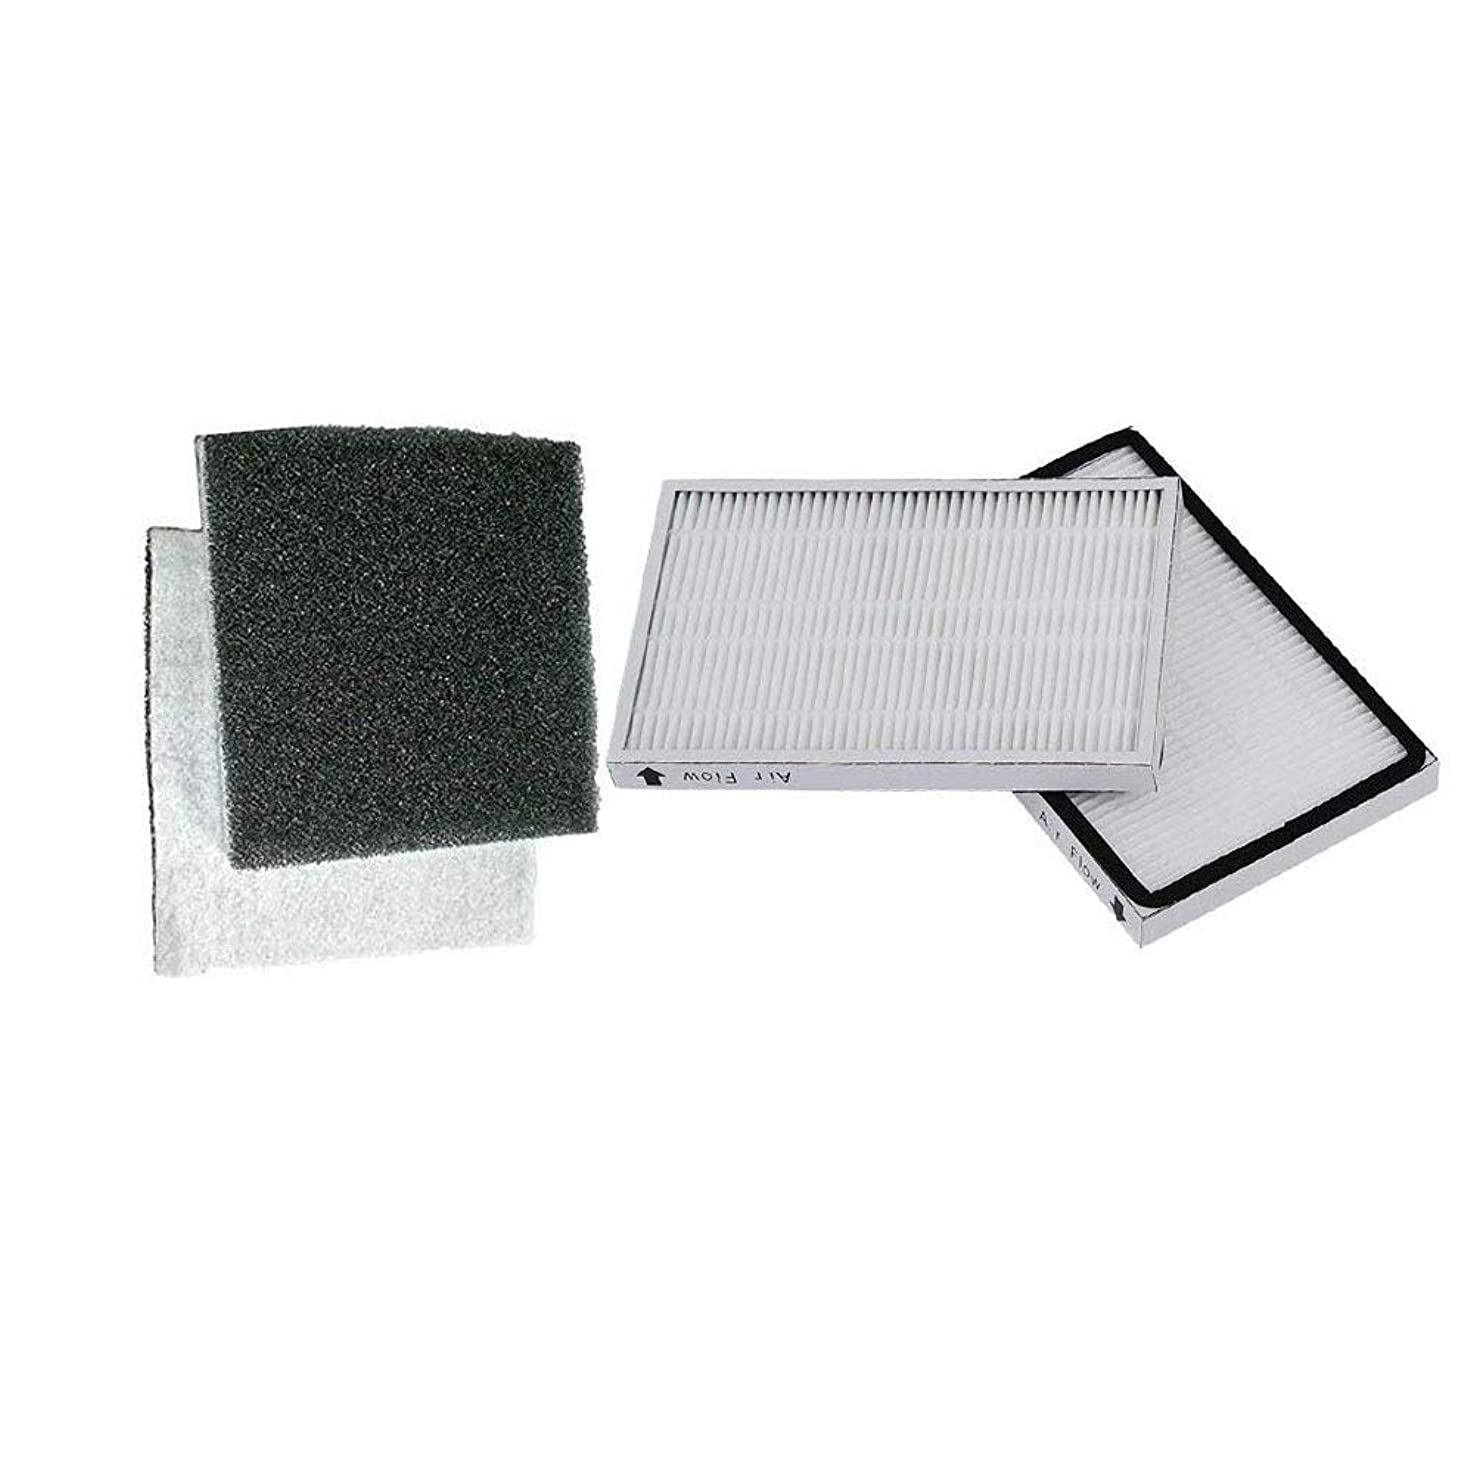 SaferCCTV 2pcs Replacement 86889 Hepa Filters with Foam Filters for Sears Kenmore EF-1 Vacuums